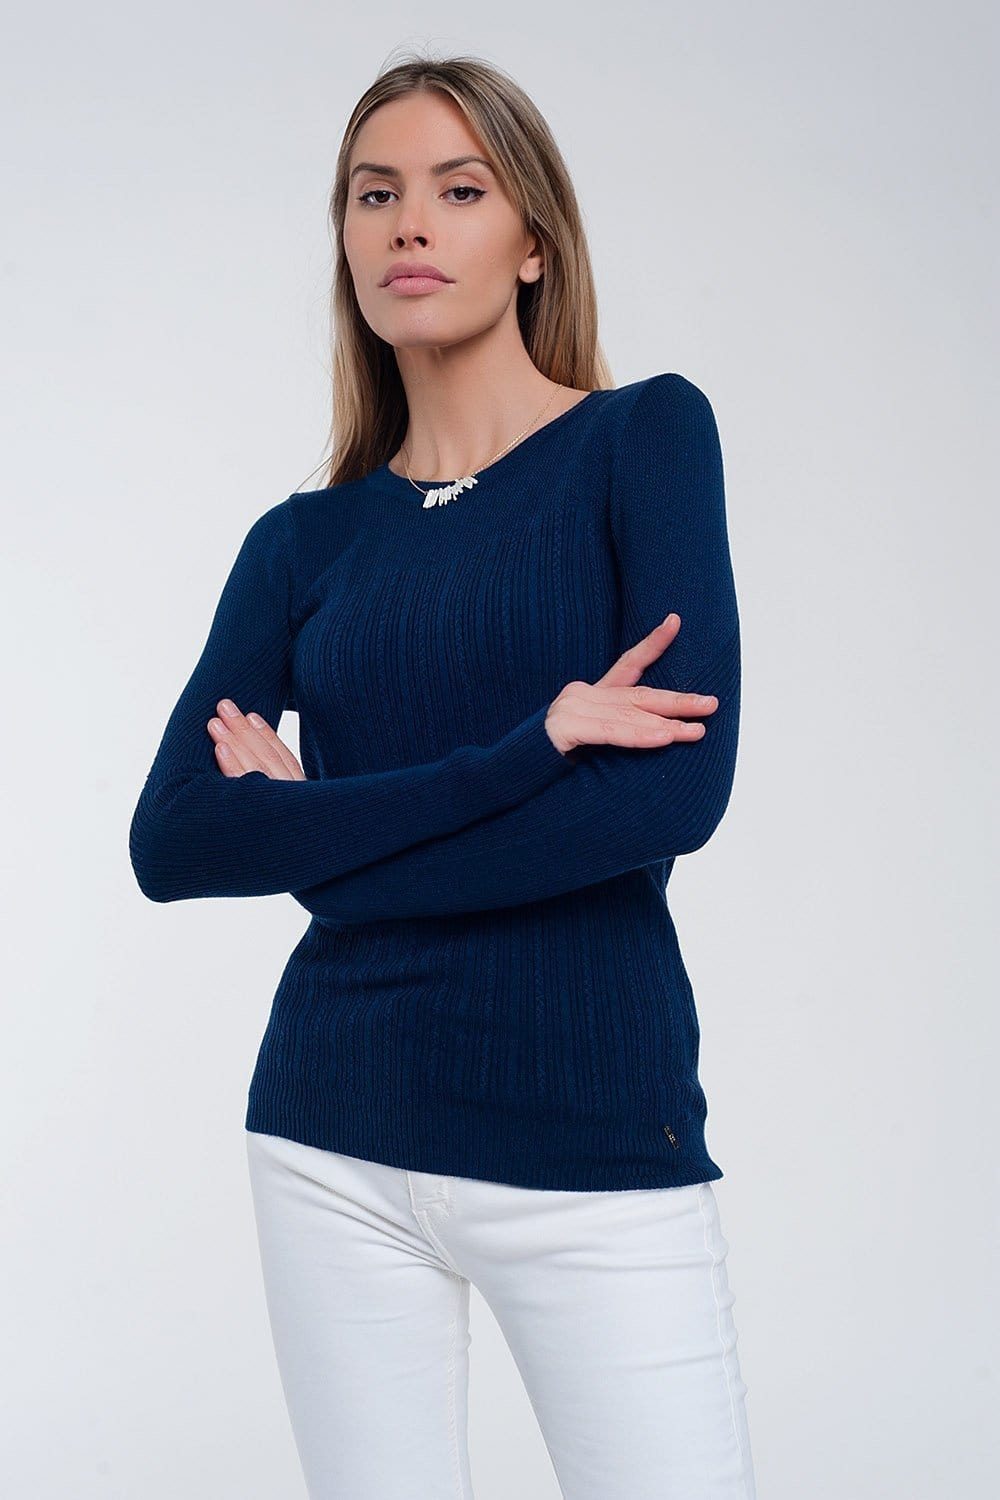 Crew Neck Ribbed Sweater in Navy - Himelhoch's